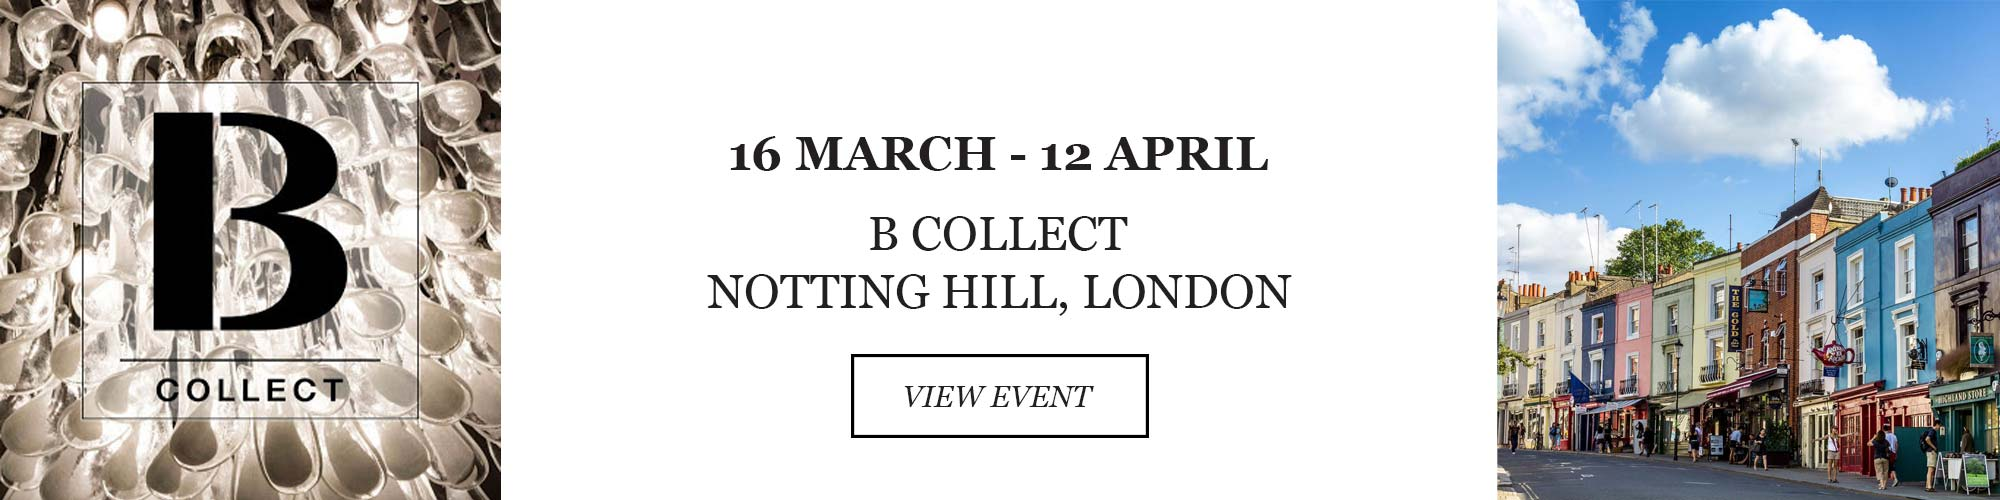 b collect notting hill london pop up